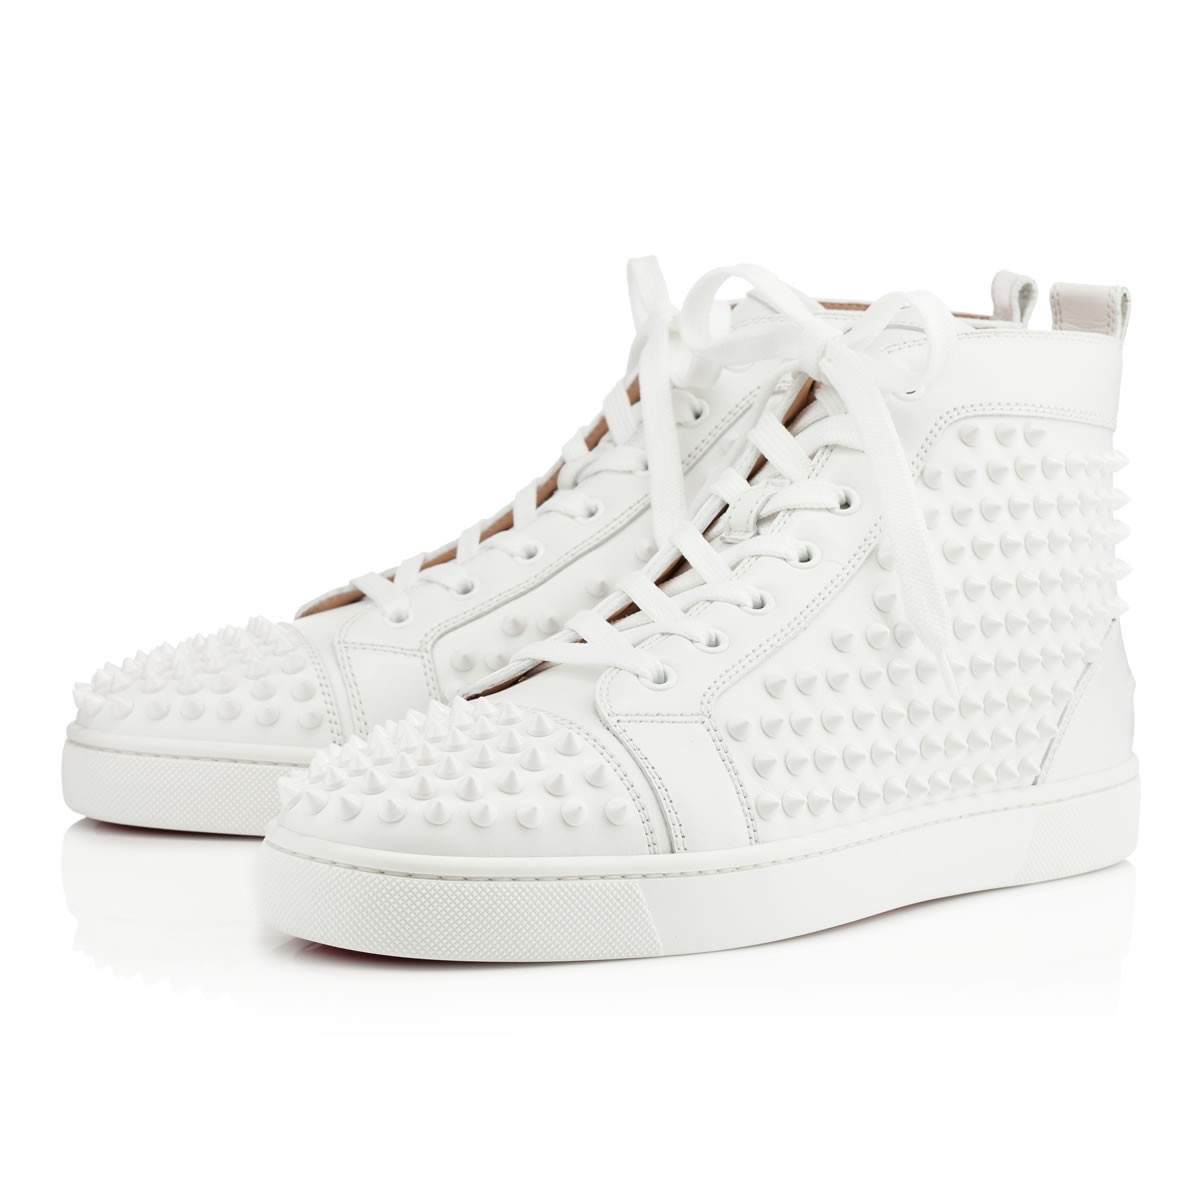 san francisco 5f8cd 924ee Louis Spikes White/White Leather - Men Shoes - Christian Louboutin